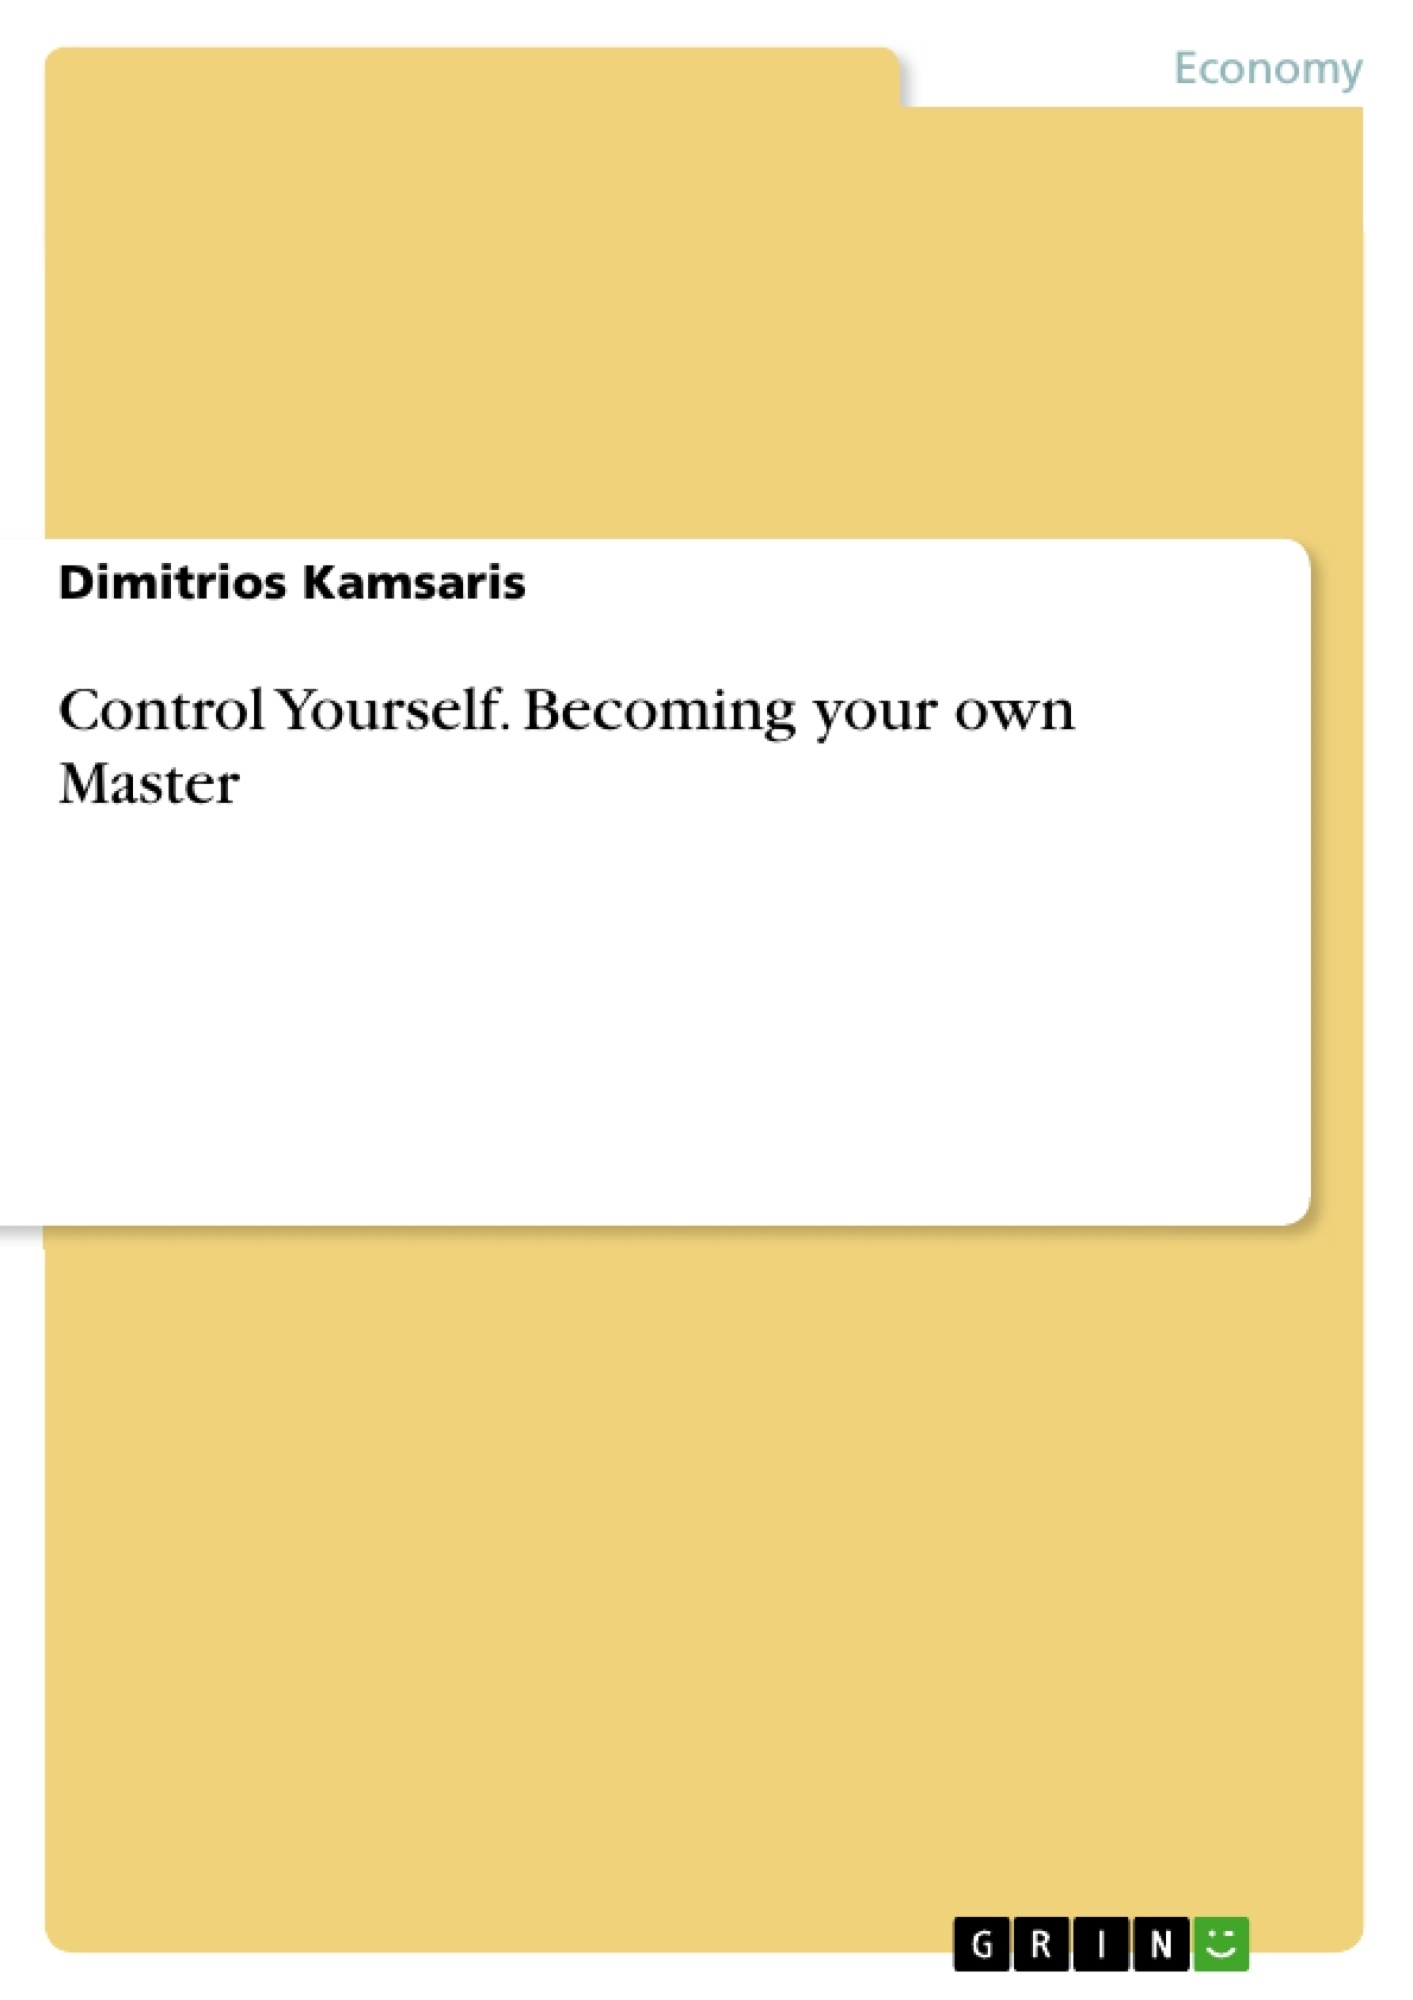 Title: Control Yourself. Becoming your own Master